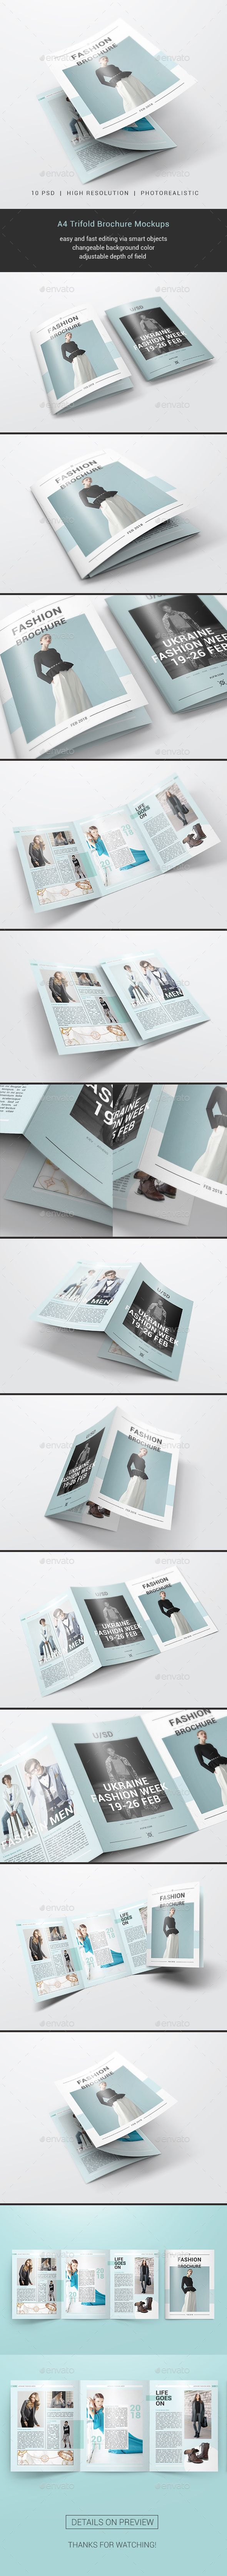 A4 Trifold Brochure Mockups #brochure #trifold Download : graphicriver.net/...